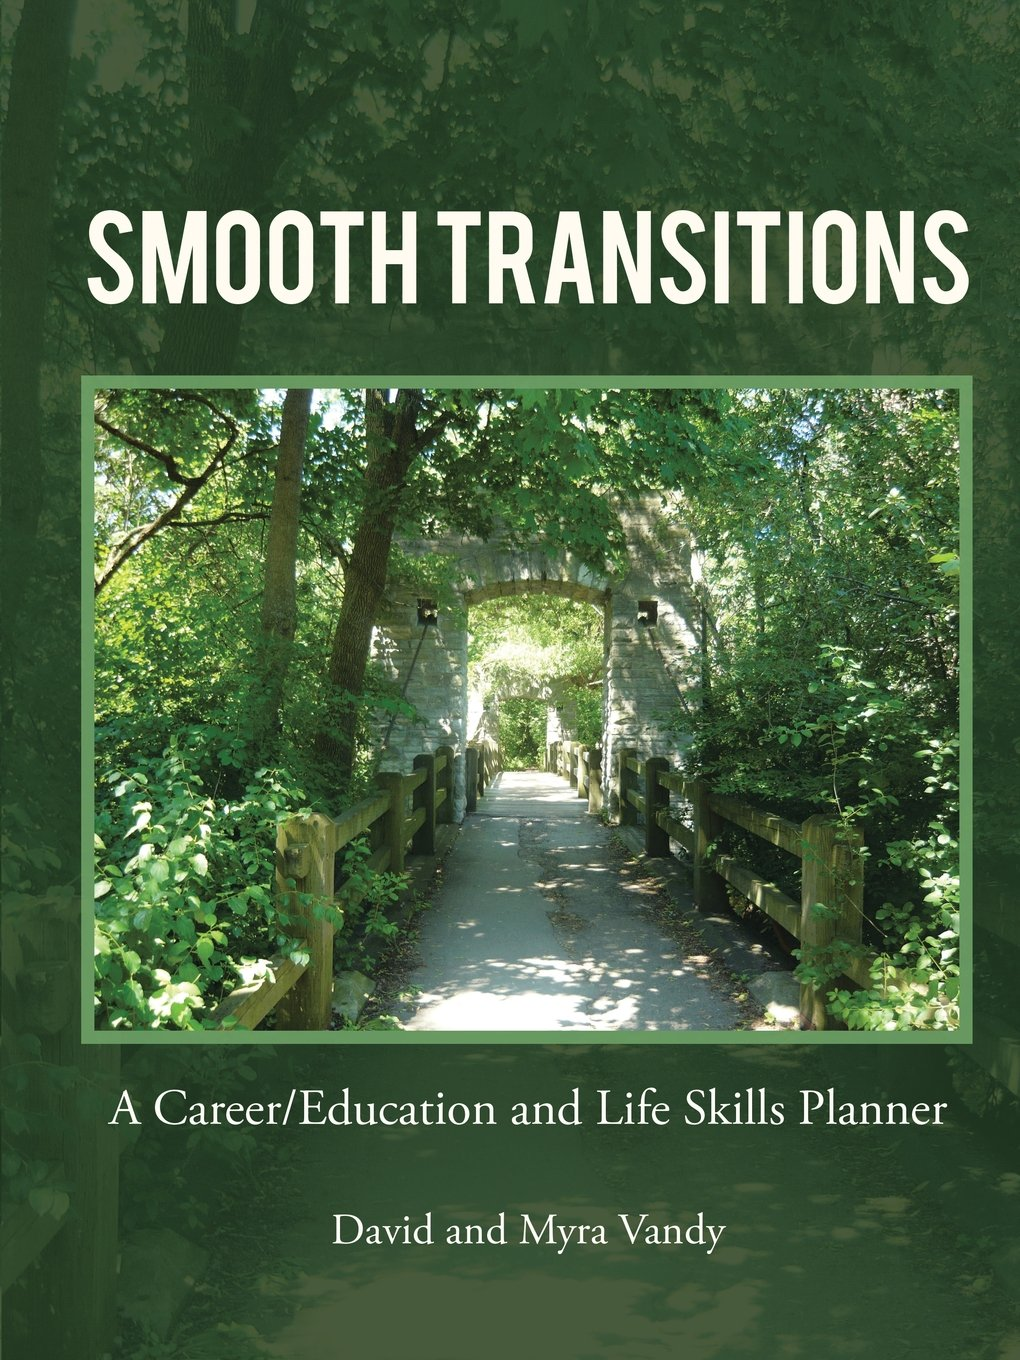 Download Smooth Transitions: A Career/Education and Life Skills Planner ebook